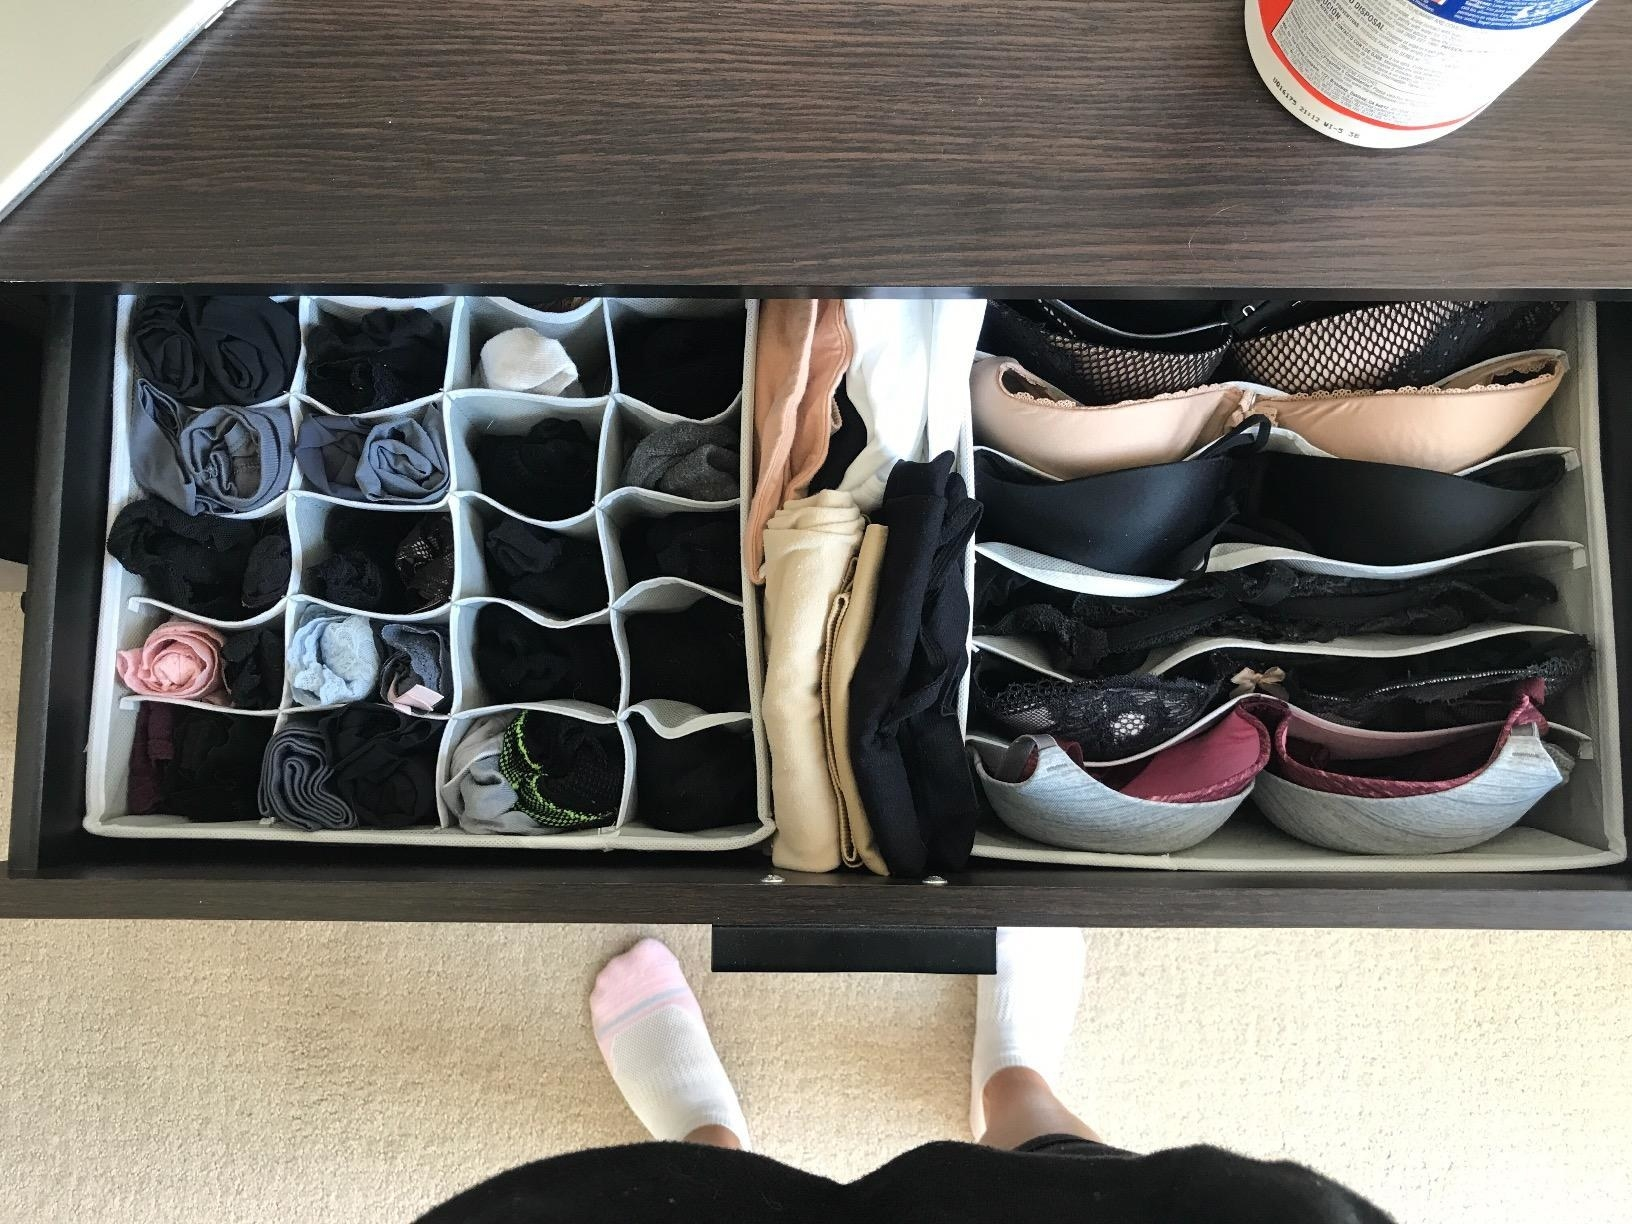 A reviewer's drawers with the dividers in them separating bras and undies